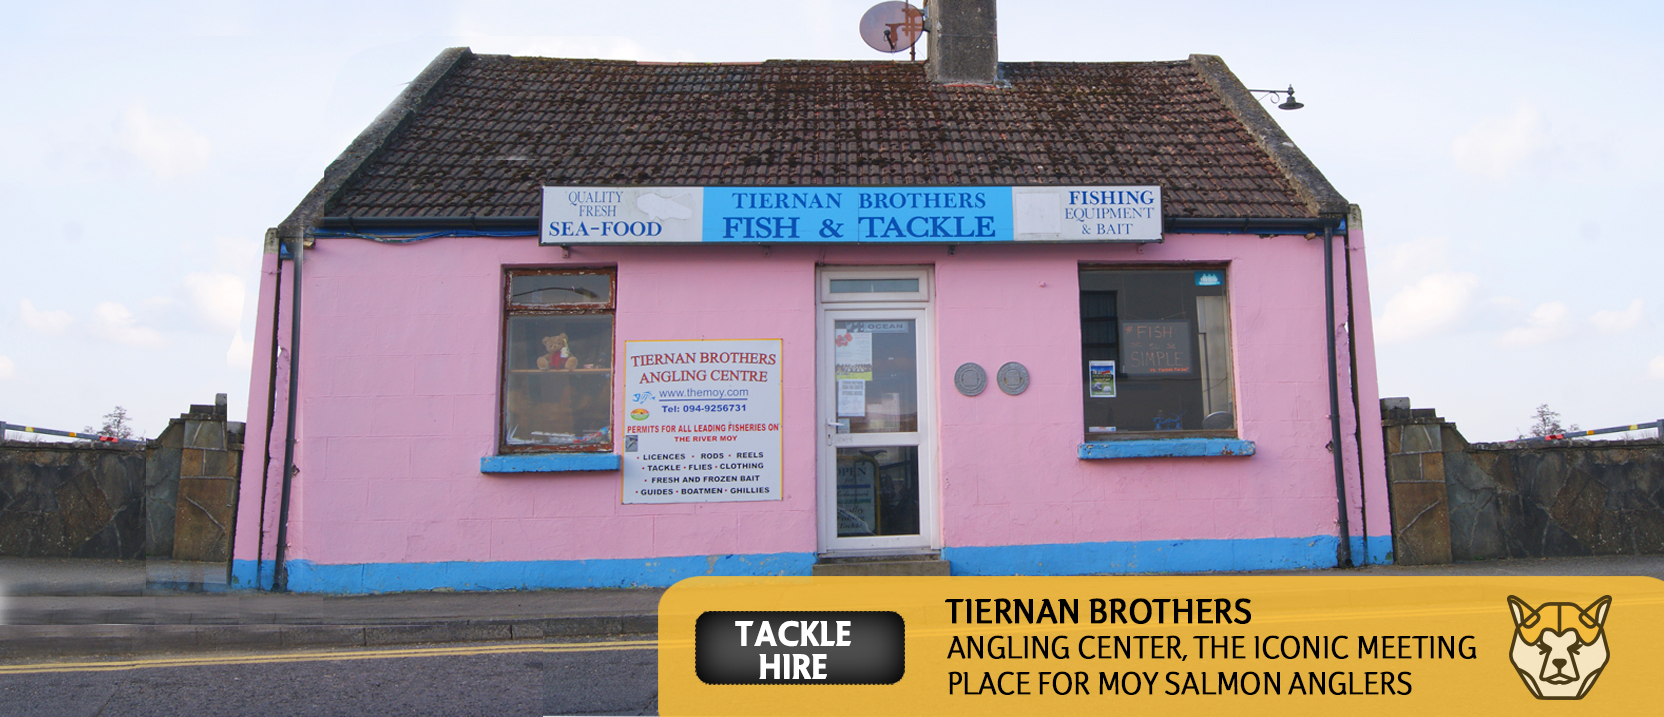 Tiernans-Banners-Tackle-Hire